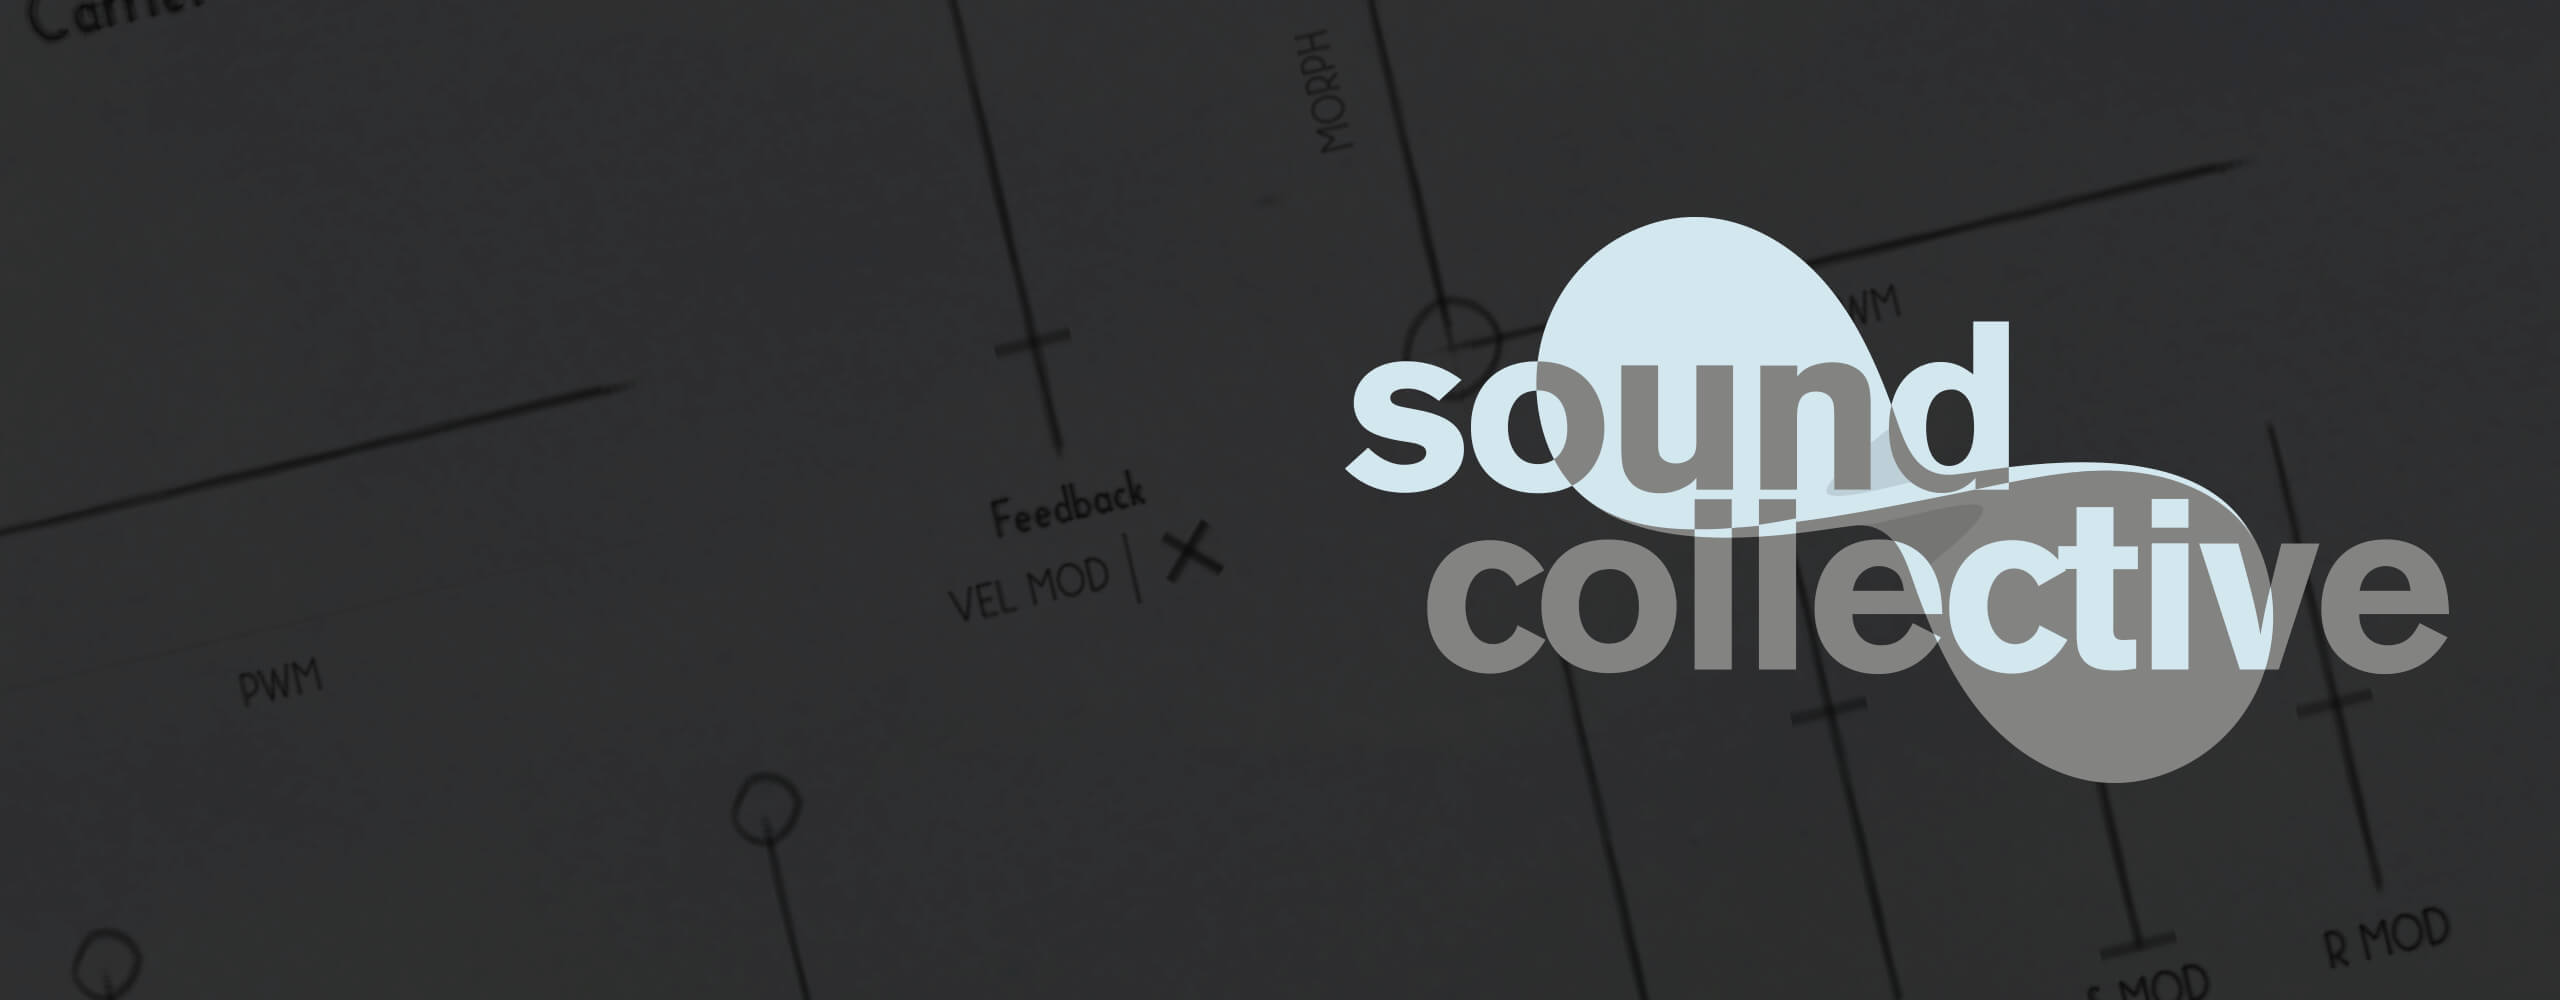 Sound Collective News Story Banner